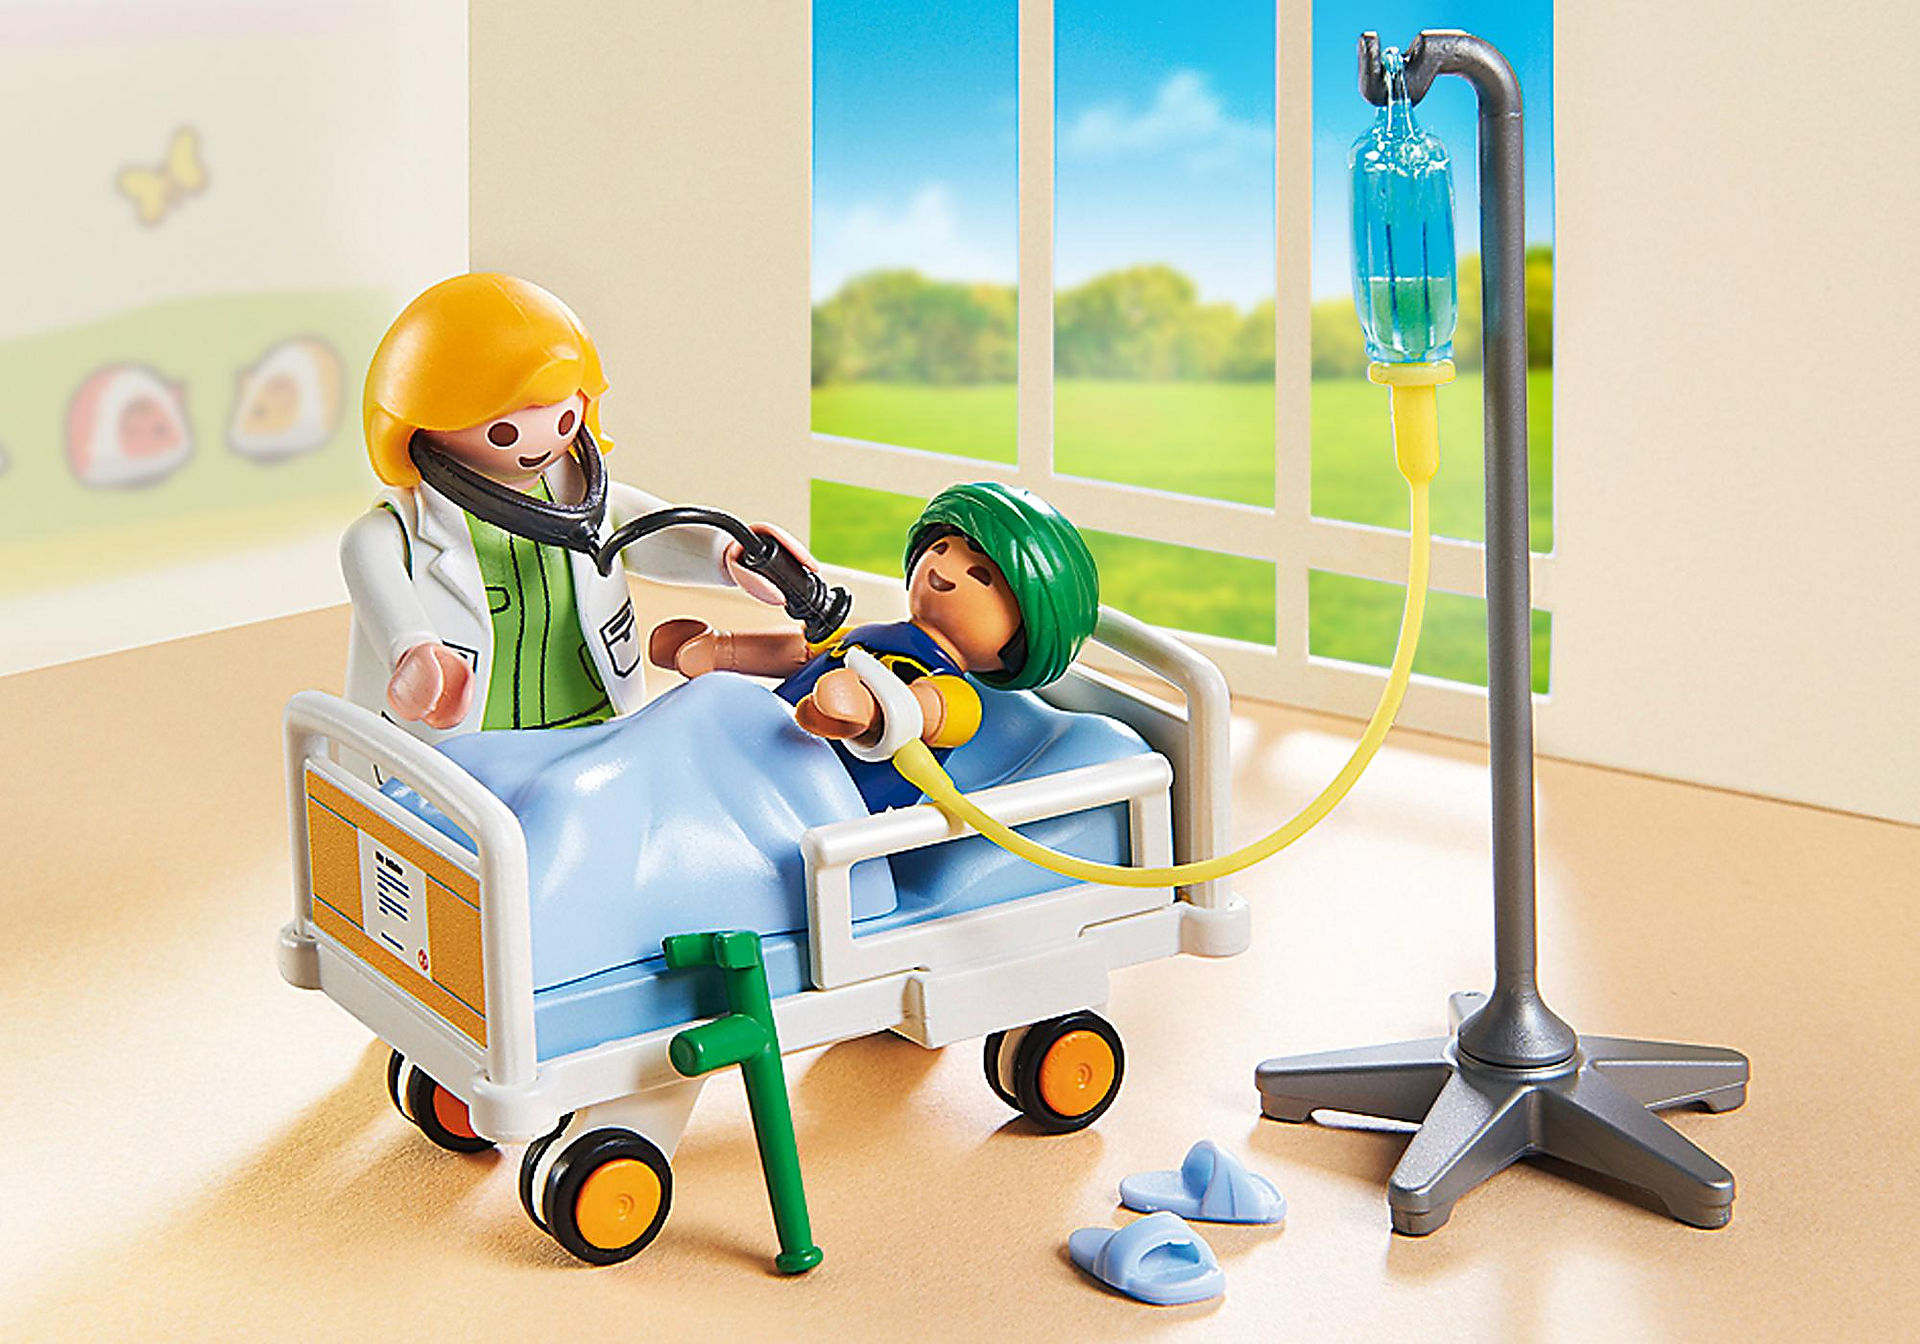 http://media.playmobil.com/i/playmobil/6661_product_extra1/Doctor with Child